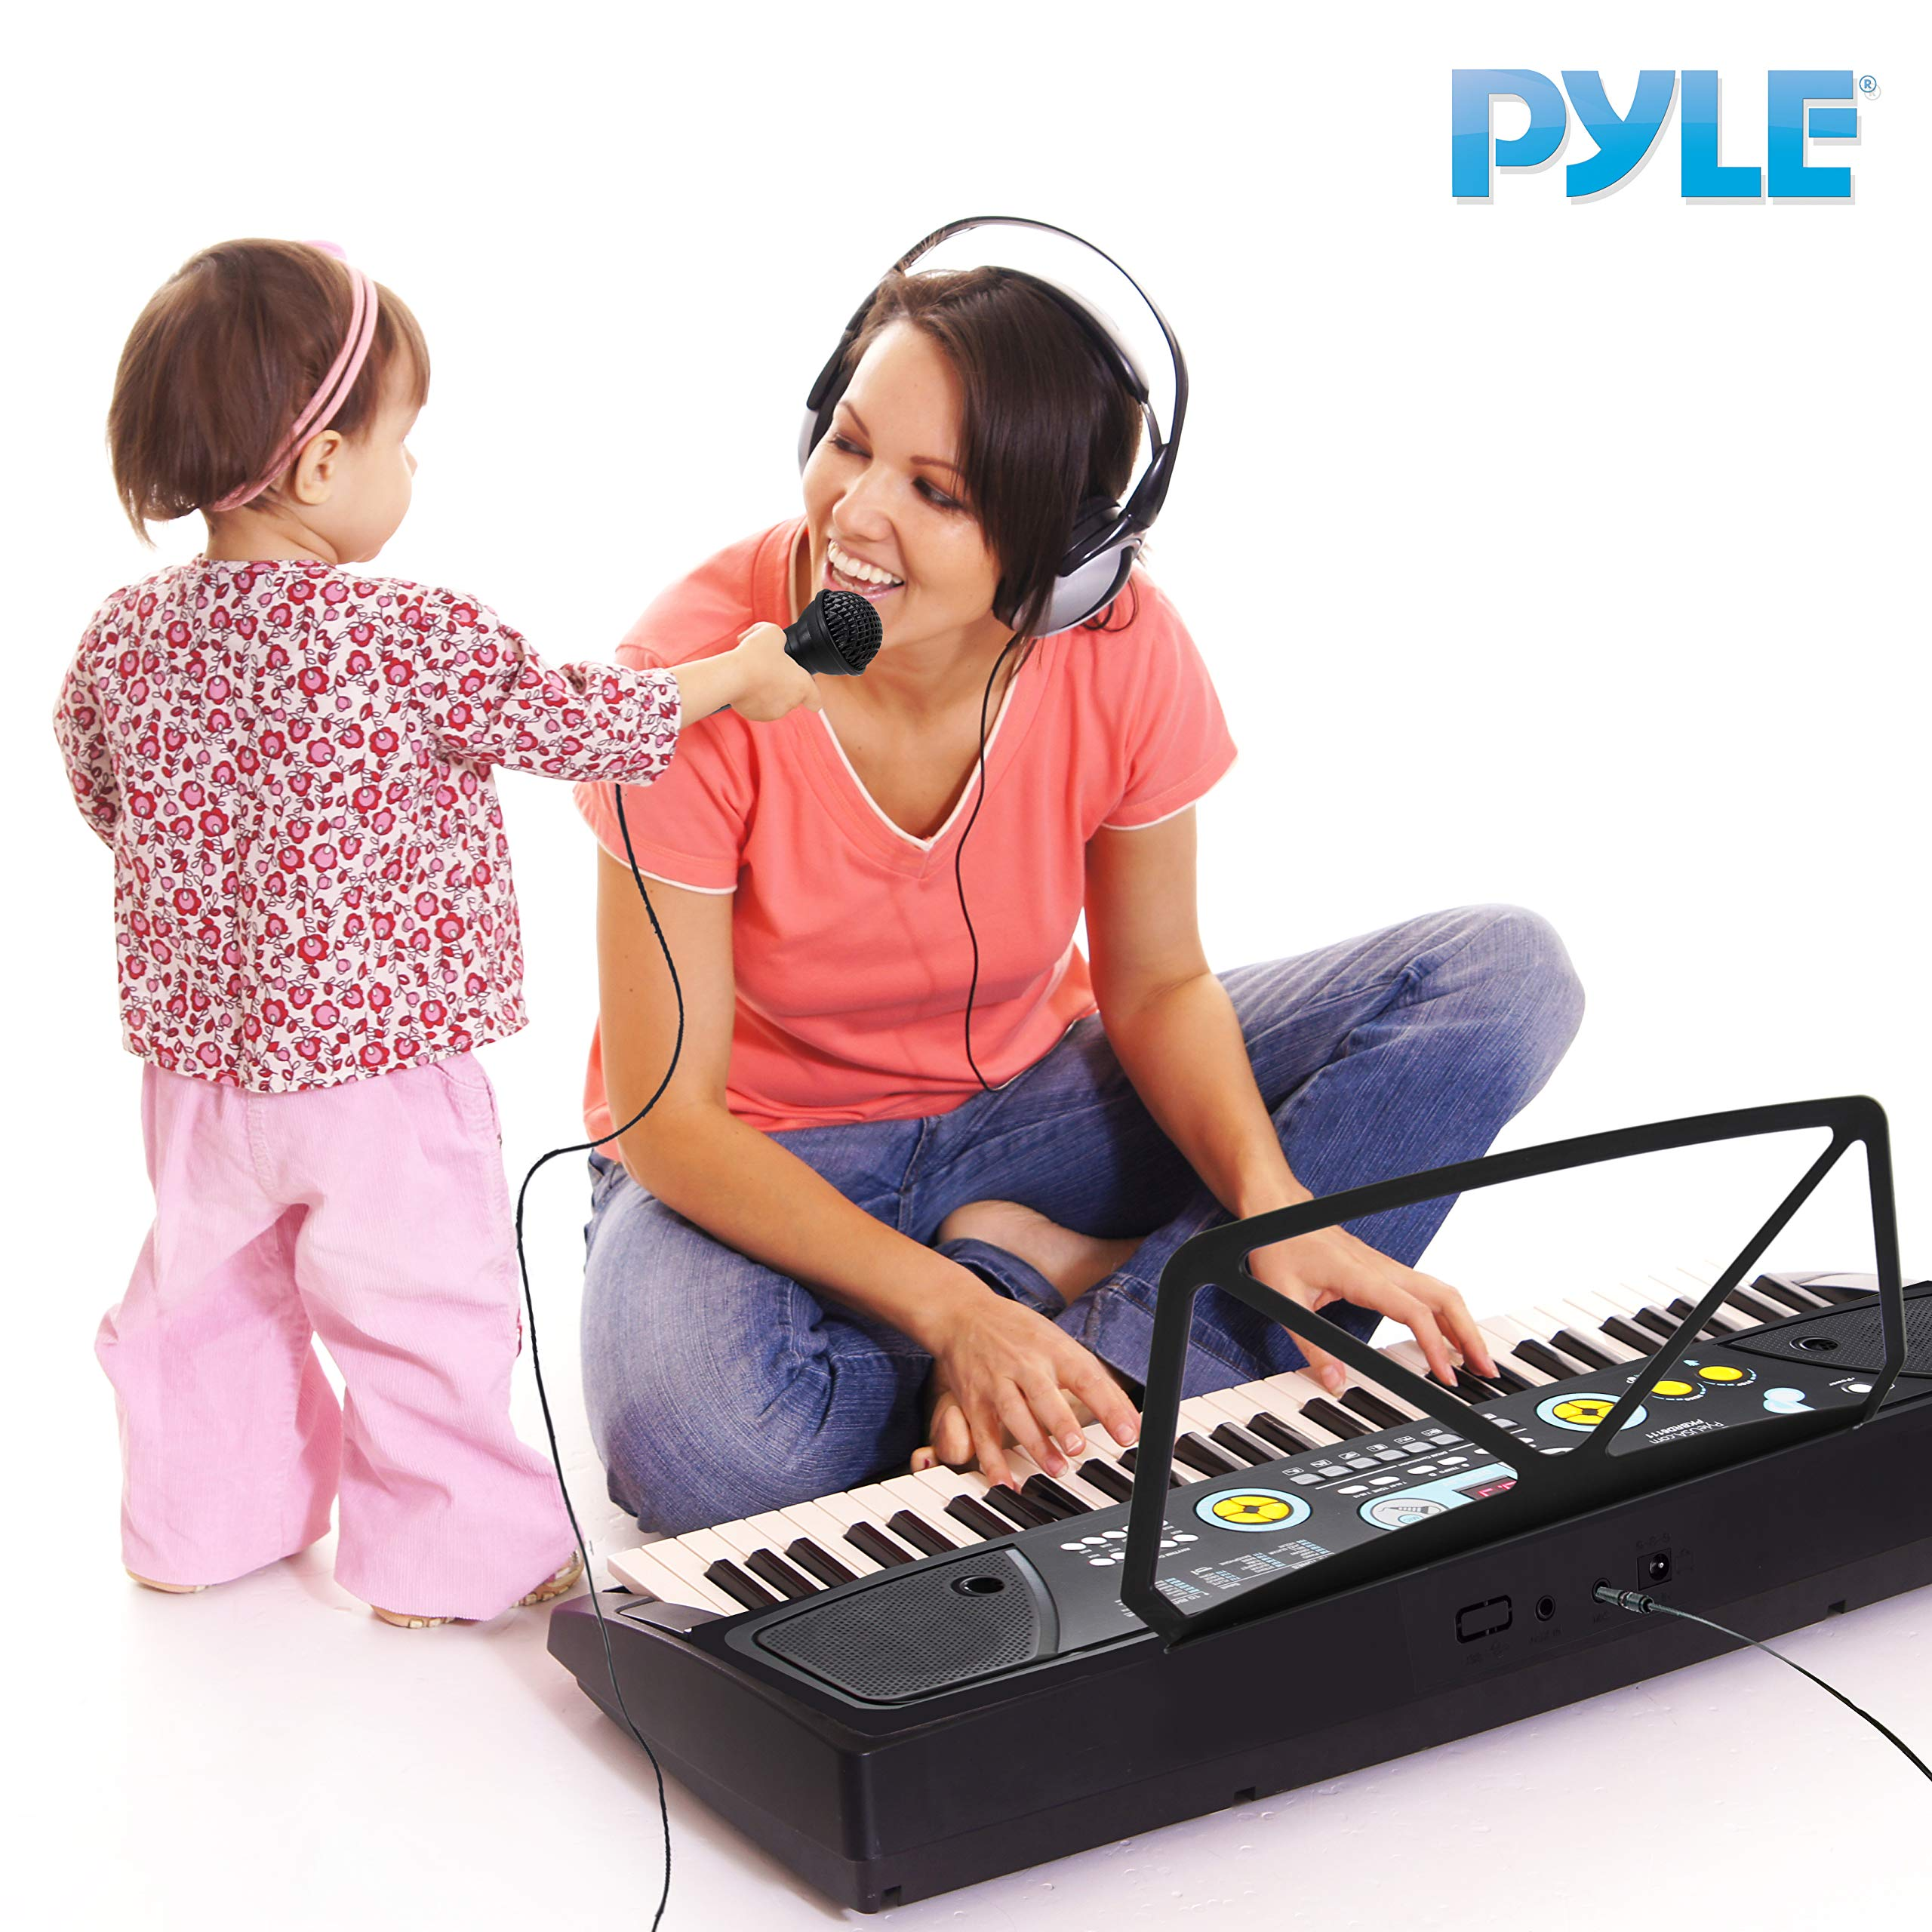 Digital Piano Kids Keyboard - Portable 61 Key Piano Keyboard, Learning Keyboard for Beginners w/ Drum Pad, Recording, Microphone, Music Sheet Stand, Built-in Speaker - Pyle by Directly Cheap (Image #6)